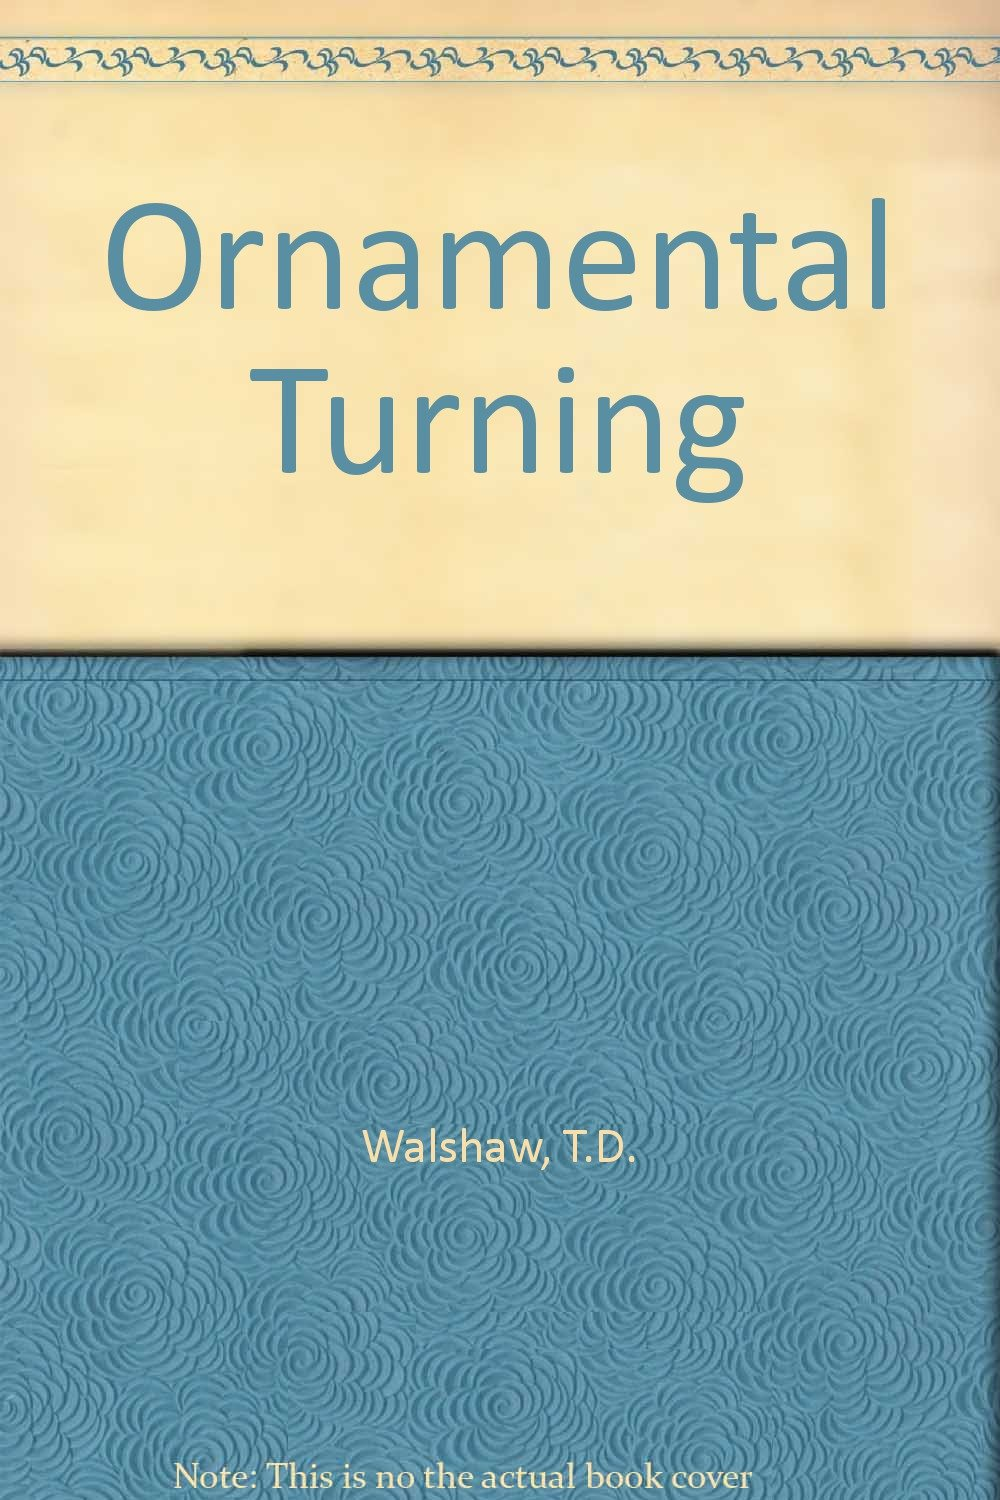 Ornamental Turning